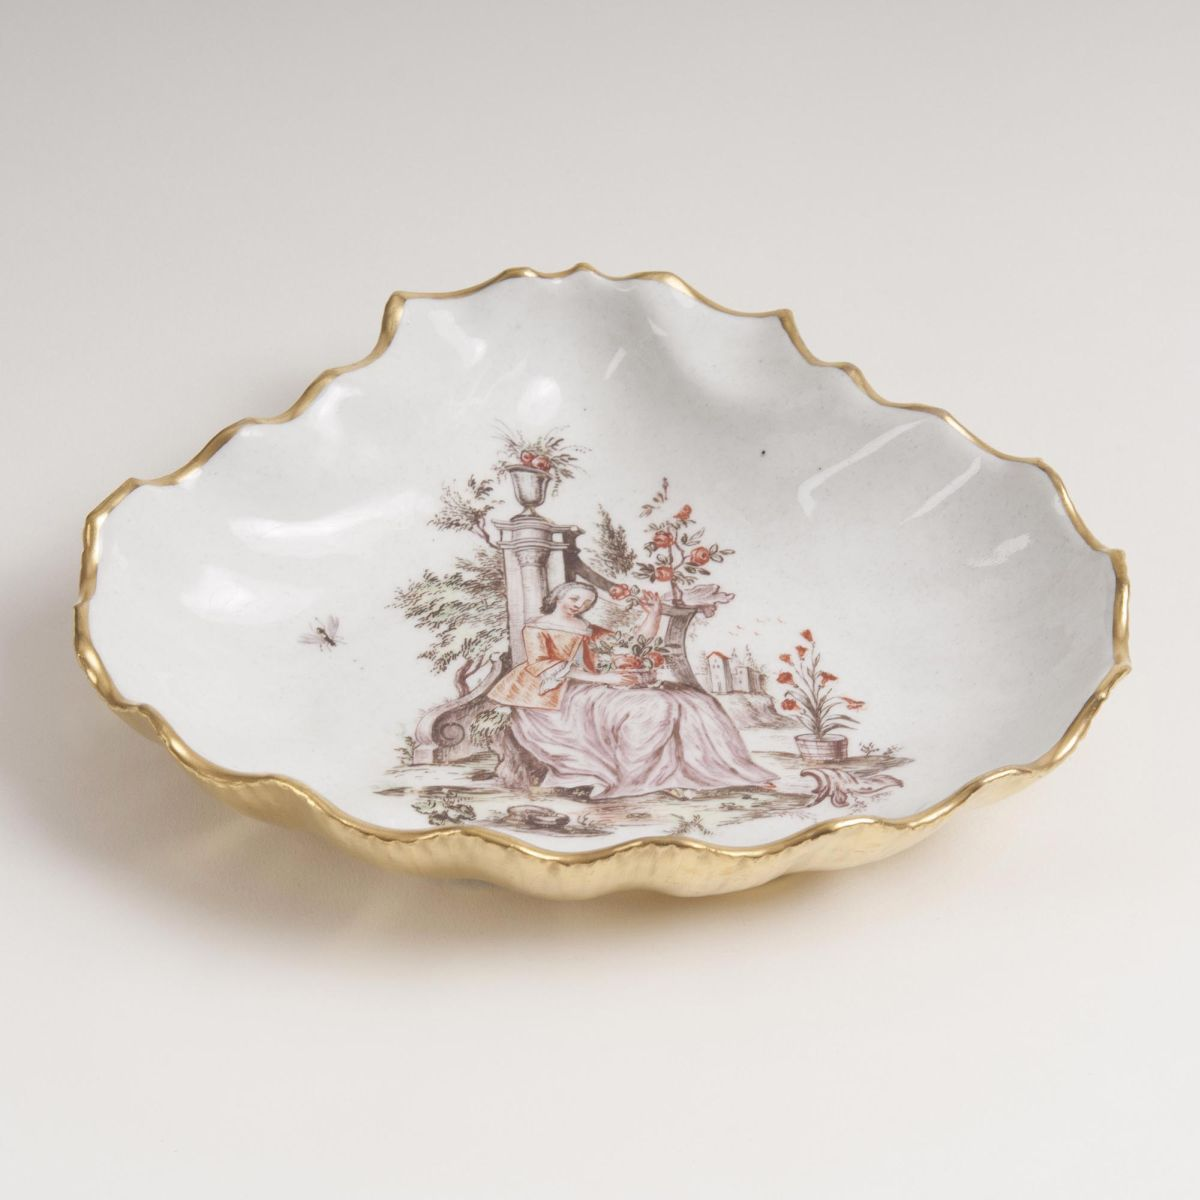 A Shell-shaped Bowl with Hausmalerei by Mayer-Pressnitz